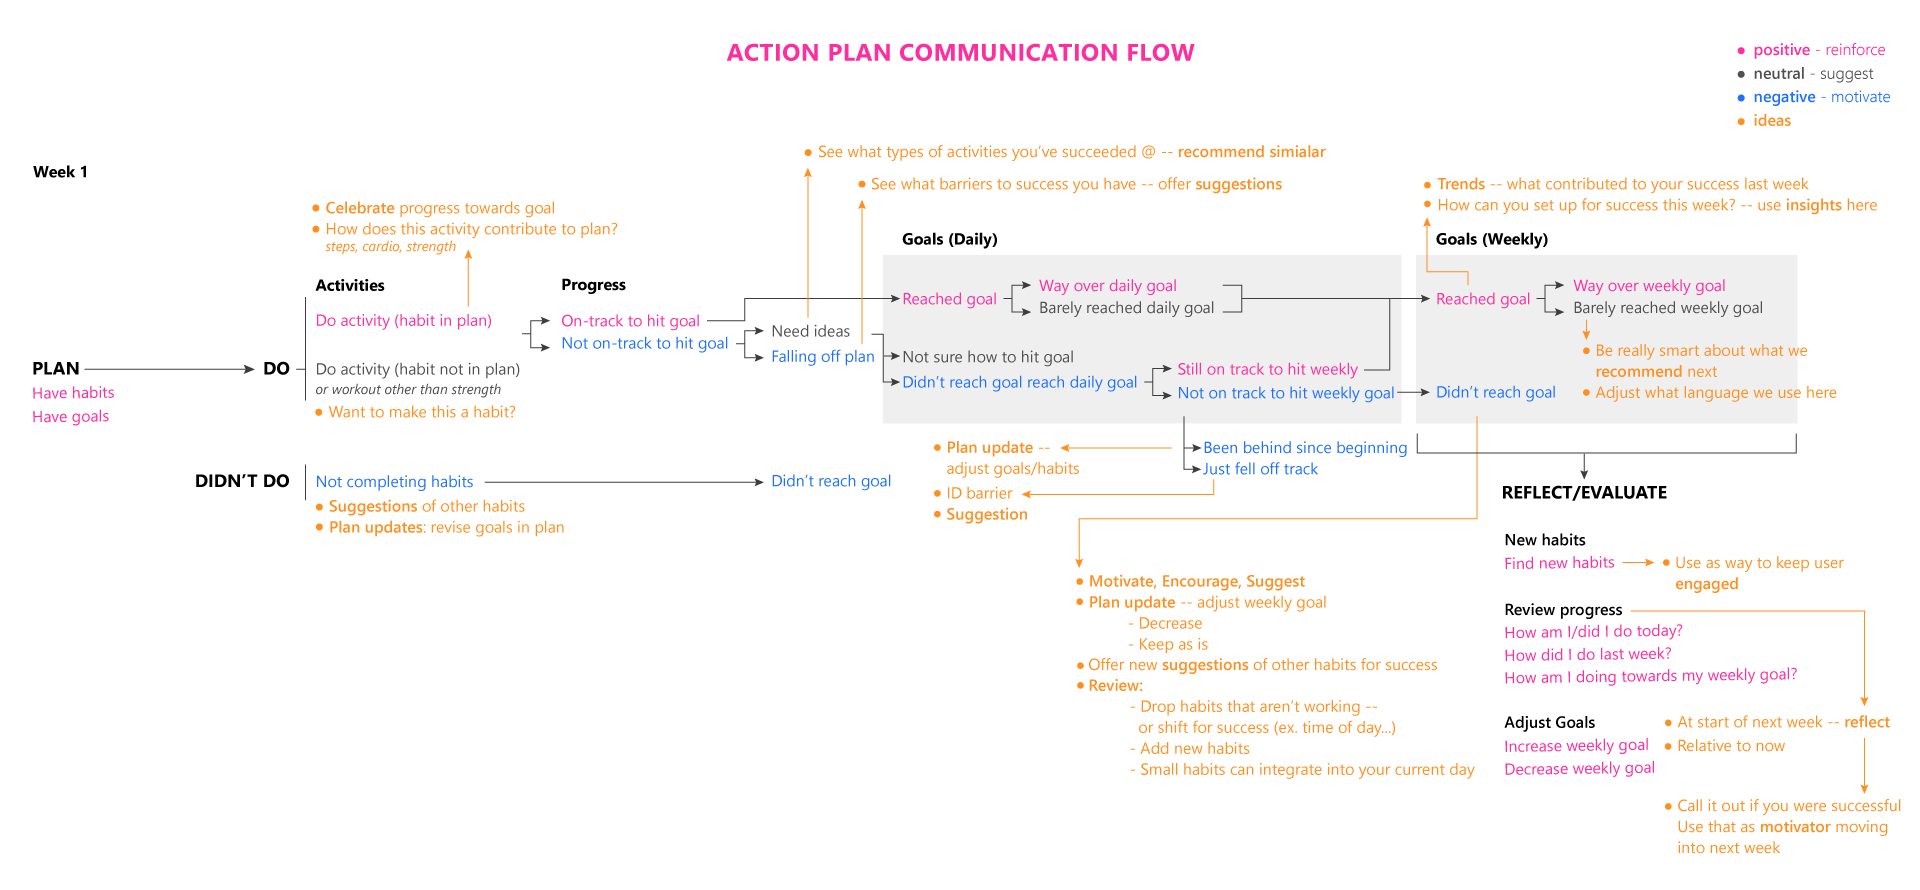 ActionPlan_CommunicationFlow_3.png